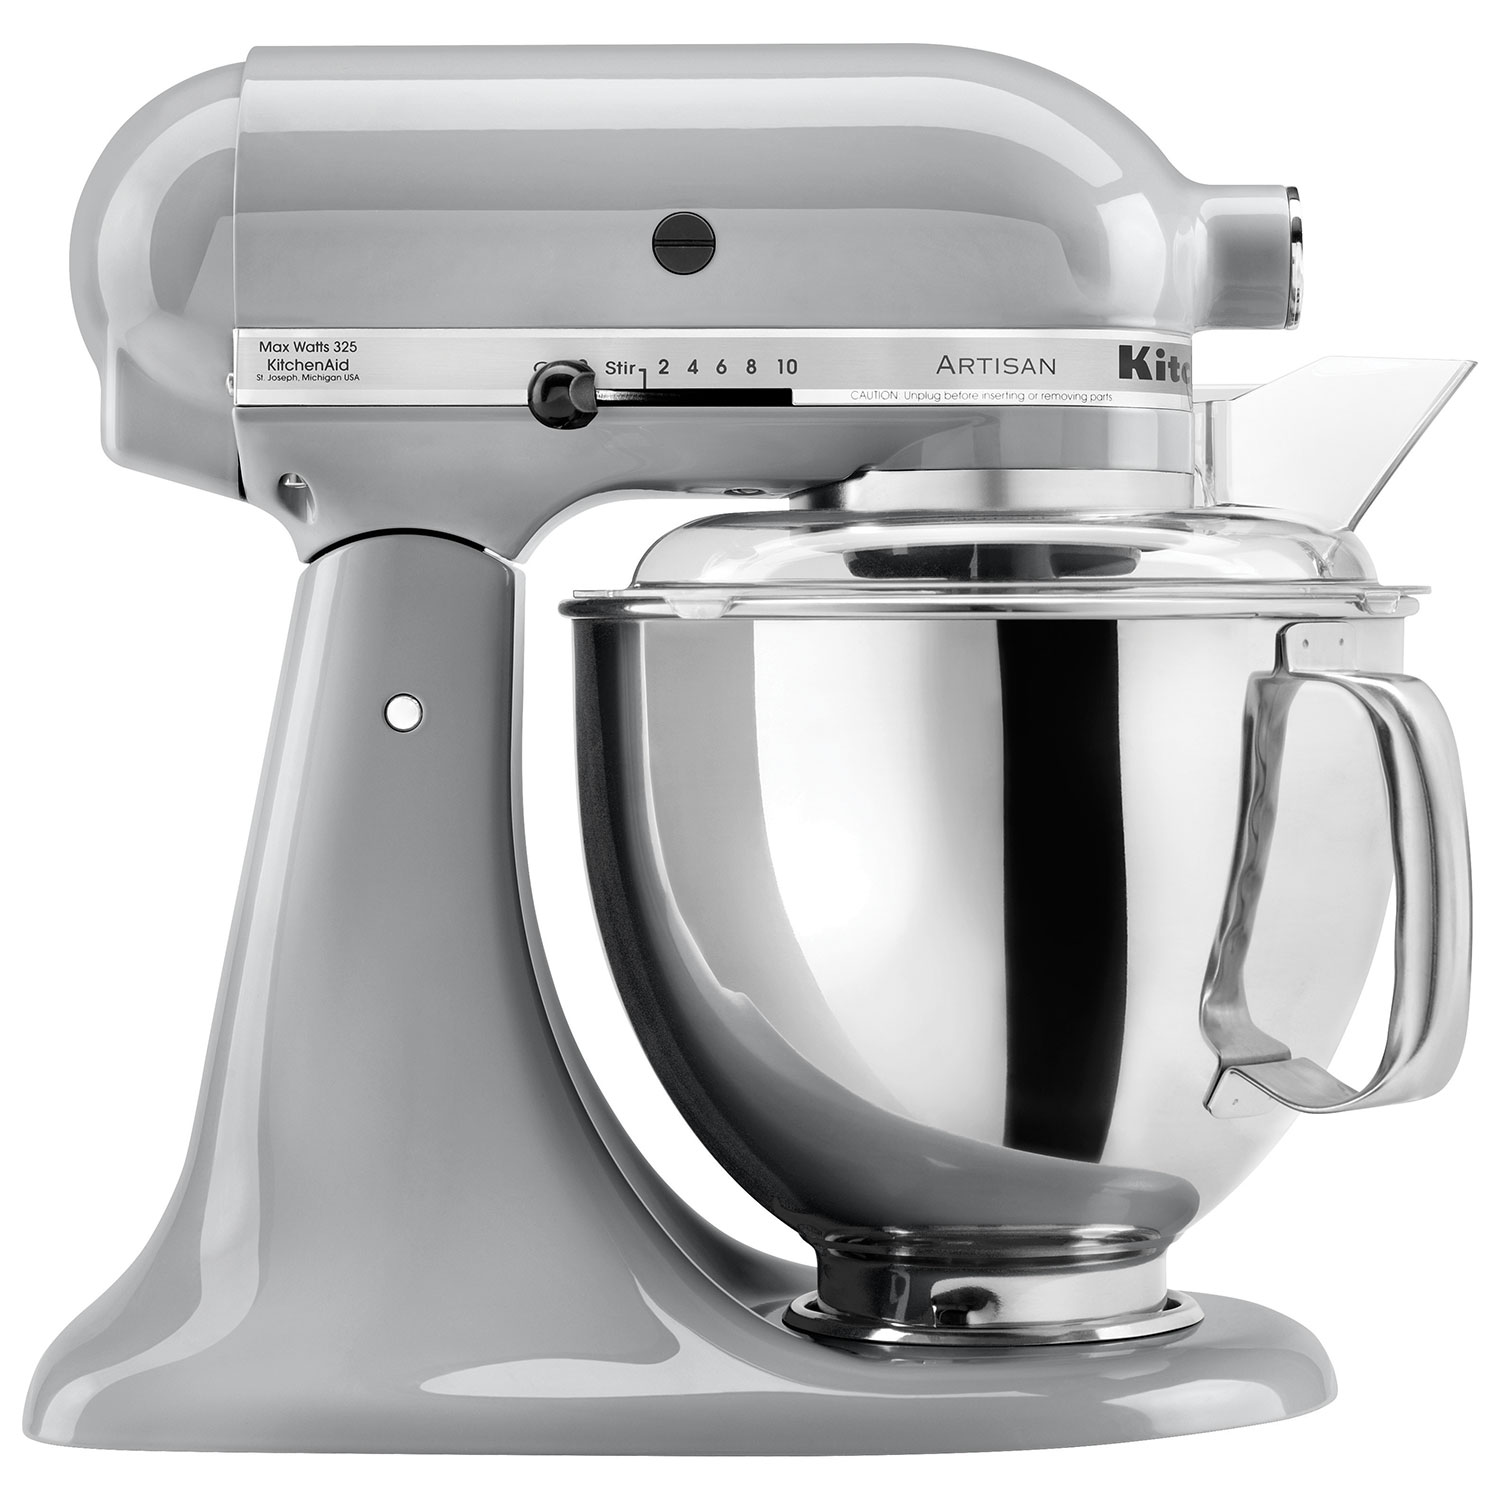 KitchenAid Artisan Stand Mixer   4.73L   325 Watt   Metallic Chrome : Stand  Mixers   Best Buy Canada